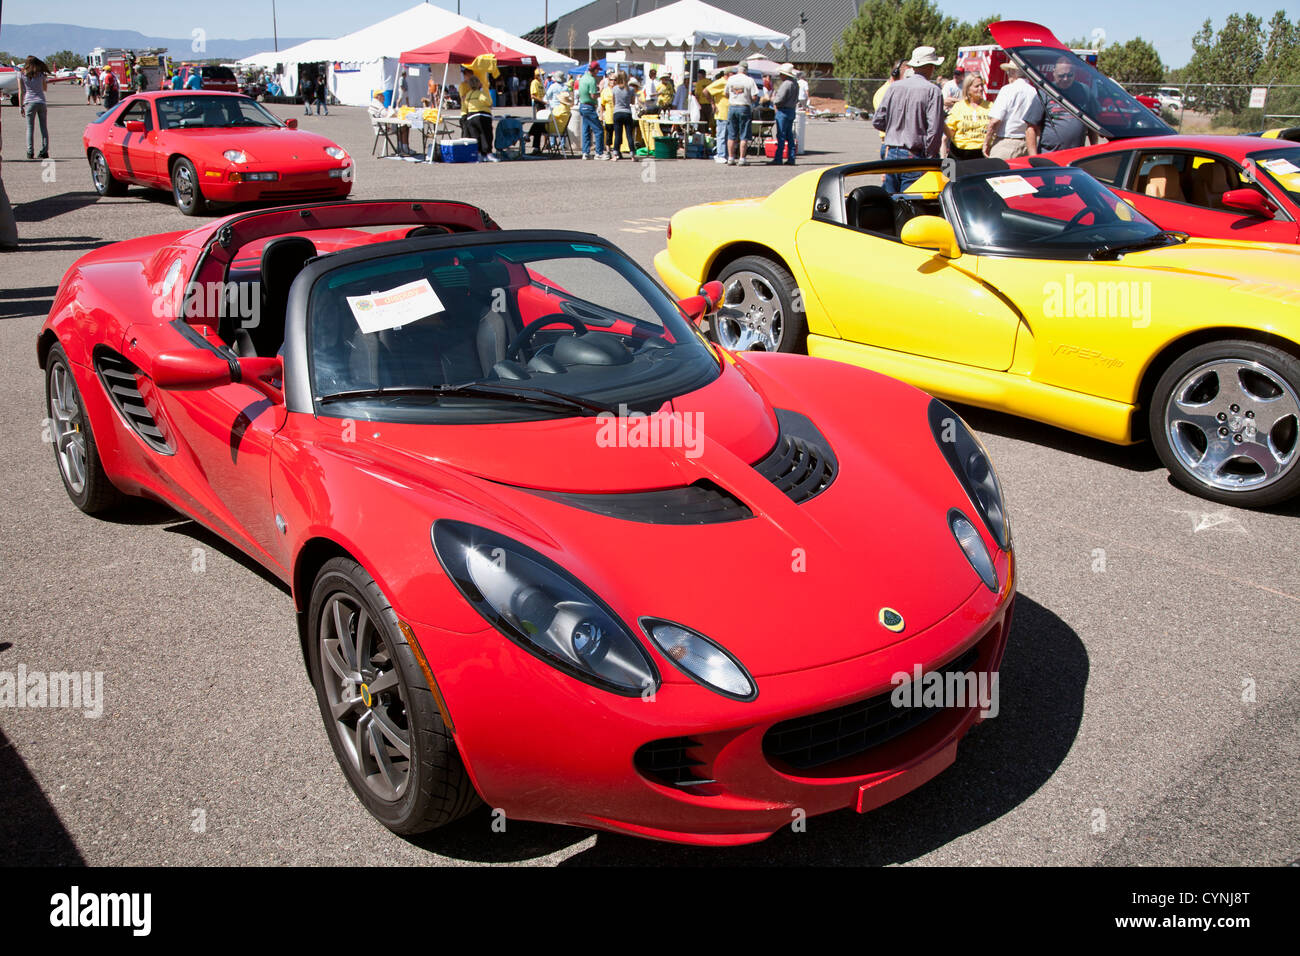 Lotus Elise   Sedona Car Show   Stock Image